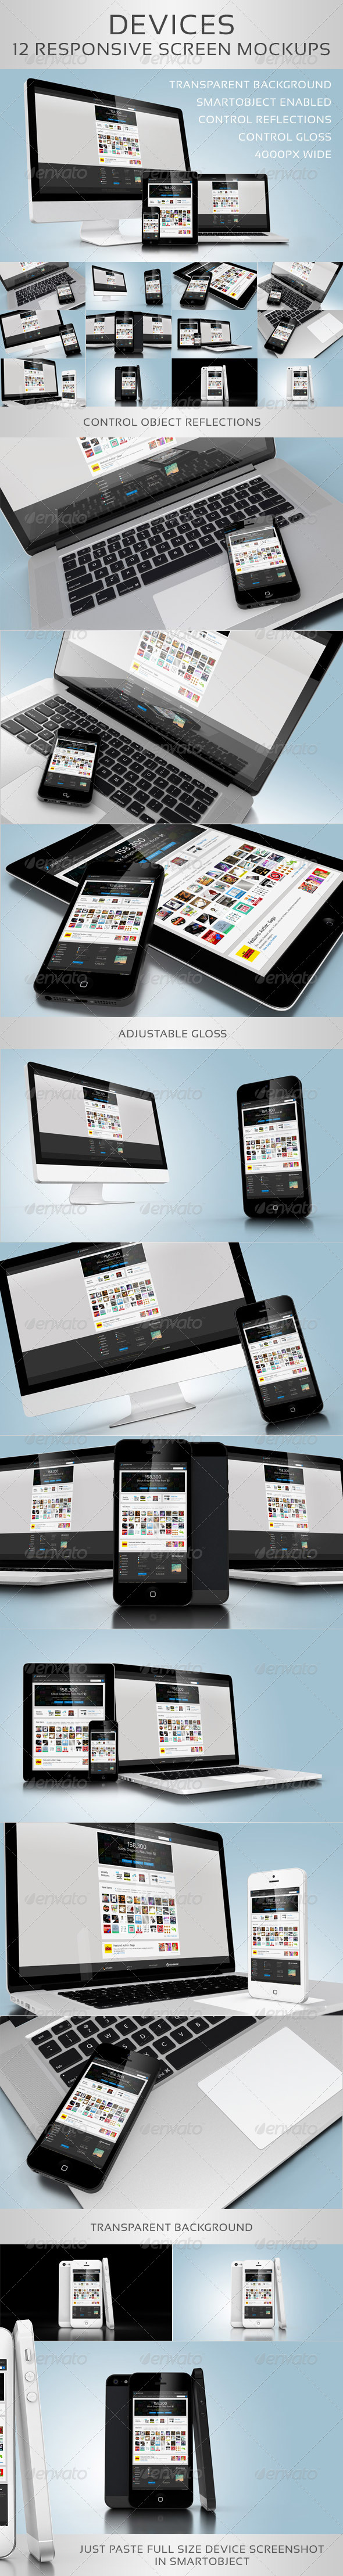 Devices - 12 Responsive Screen Mockups - Multiple Displays